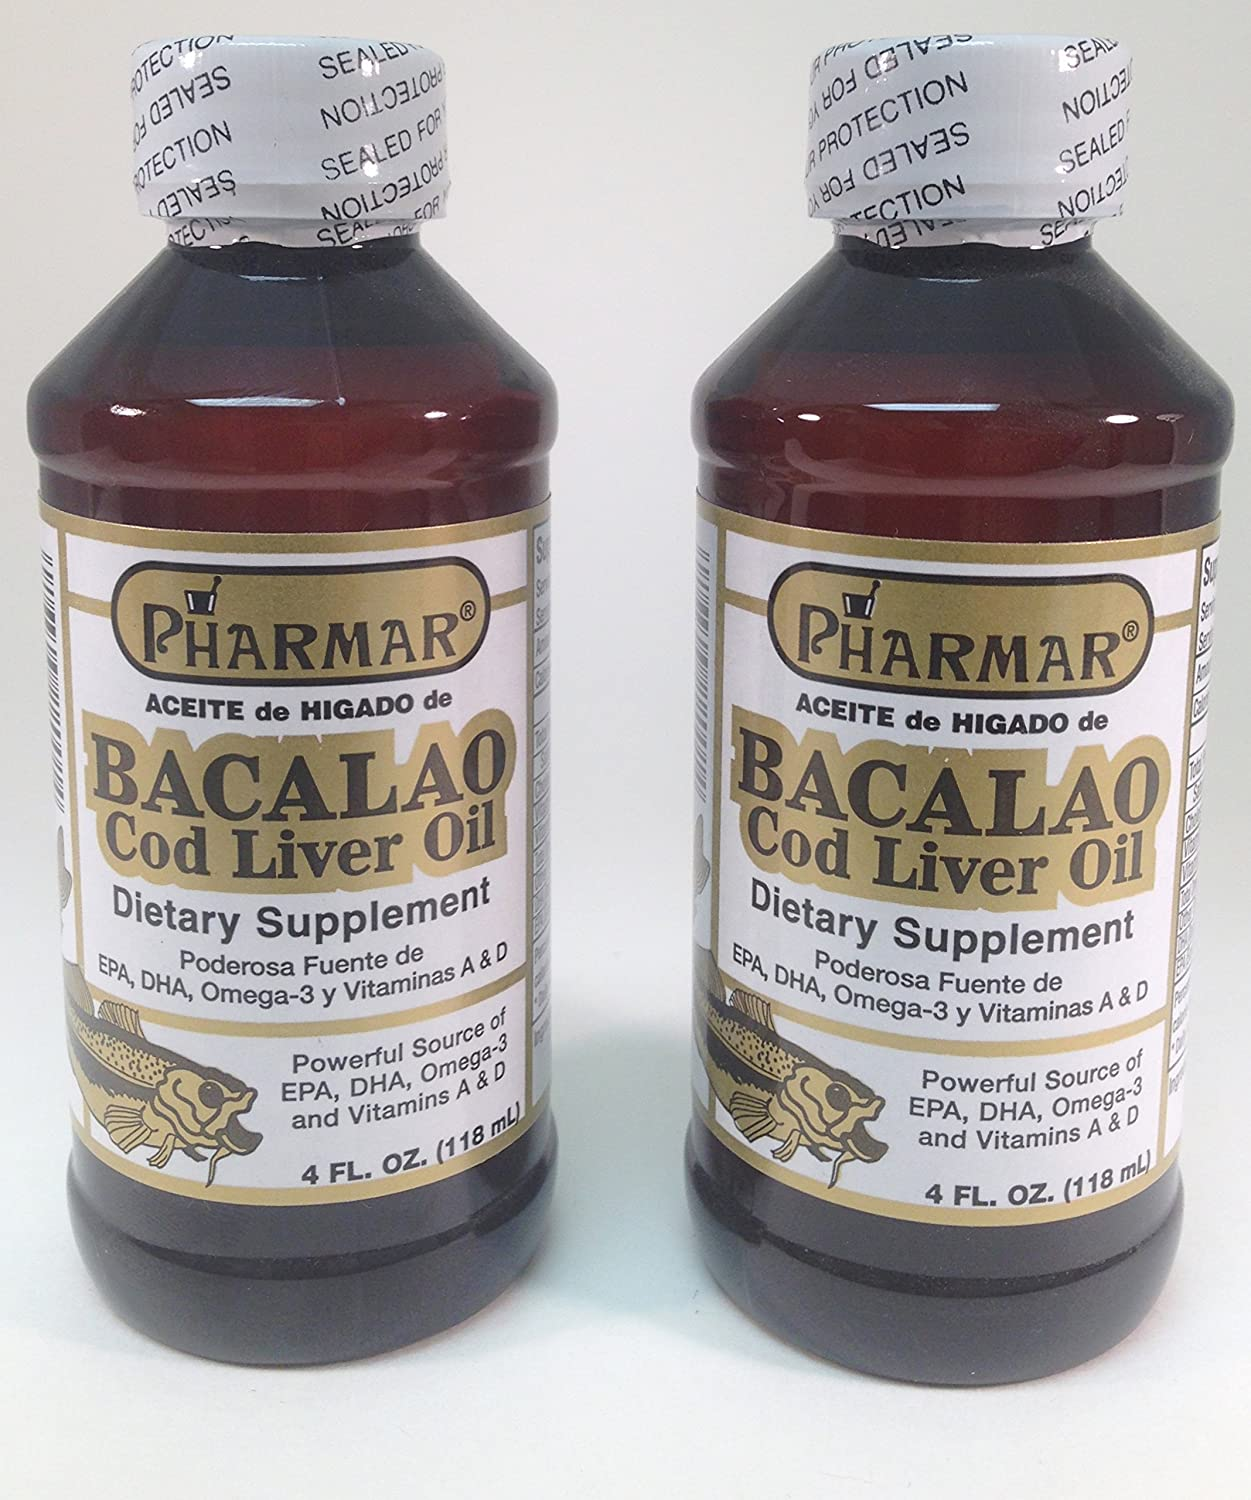 Amazon.com: Aceite De Higado De Bacalao 4 Oz. Cod Liver Oil 2-PACK: Health & Personal Care